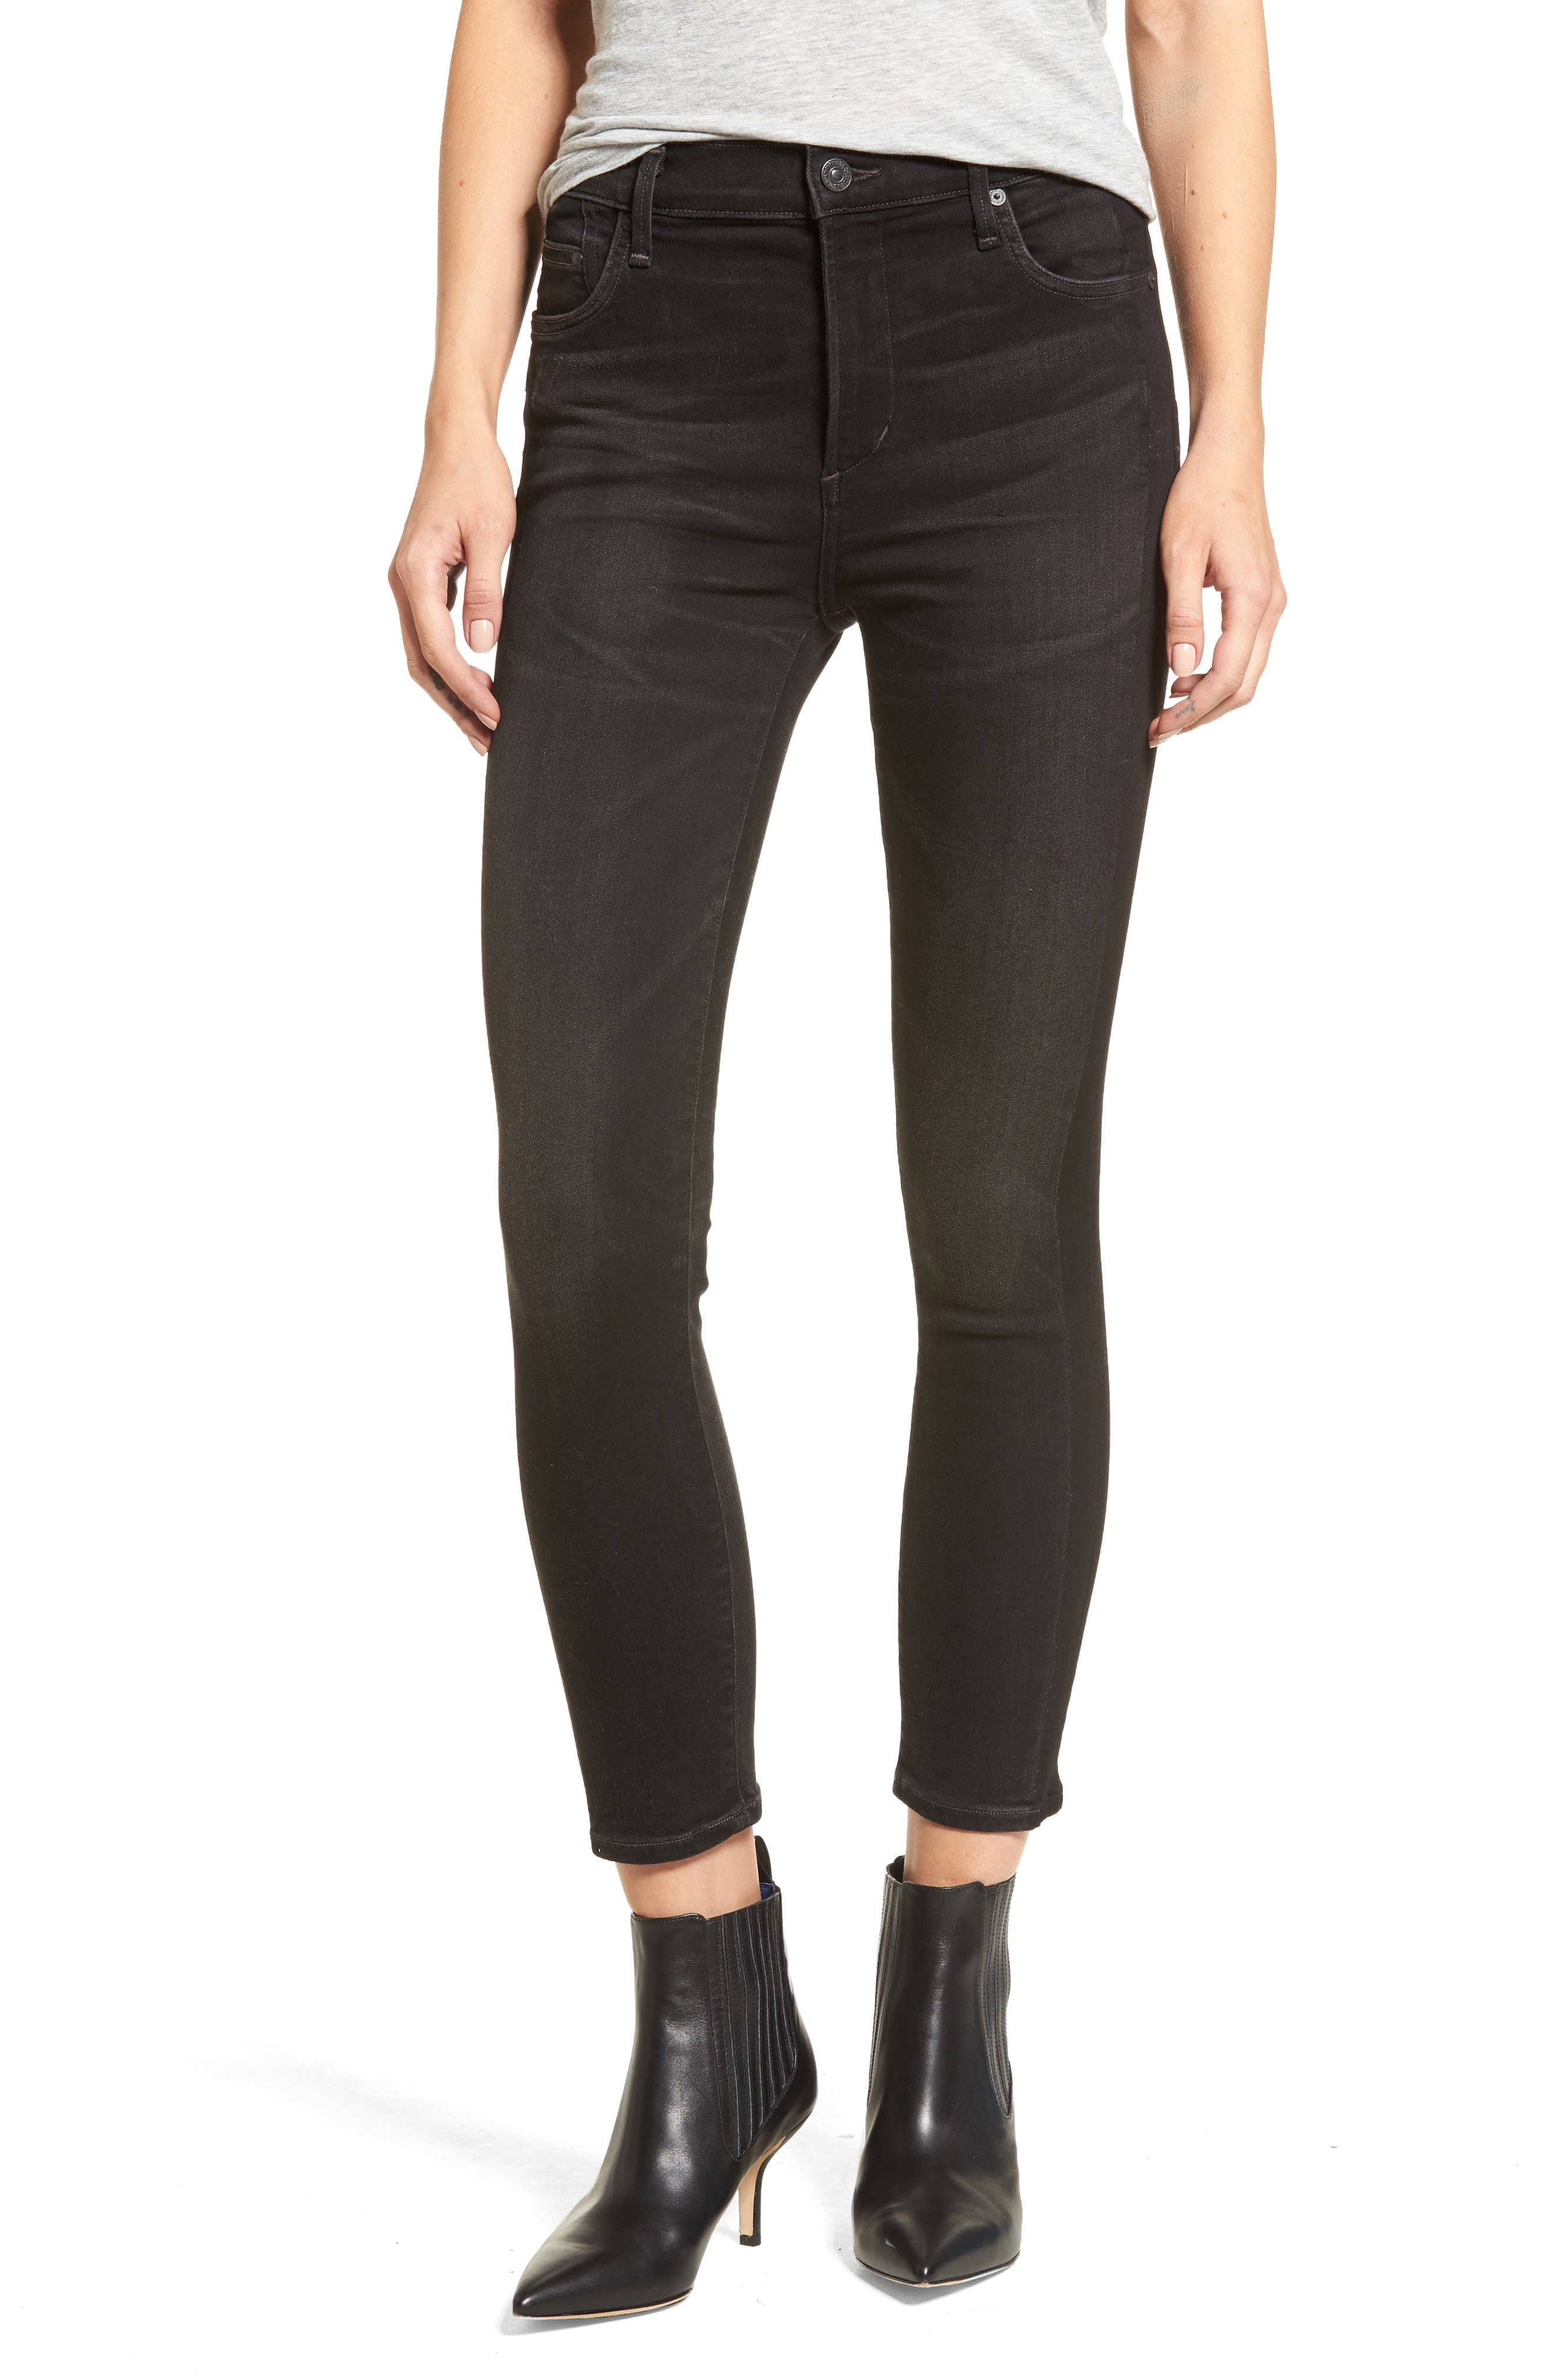 Rocket High Waist Crop Skinny Jeans,                             Main thumbnail 1, color,                             Shadow Stripe Darkness